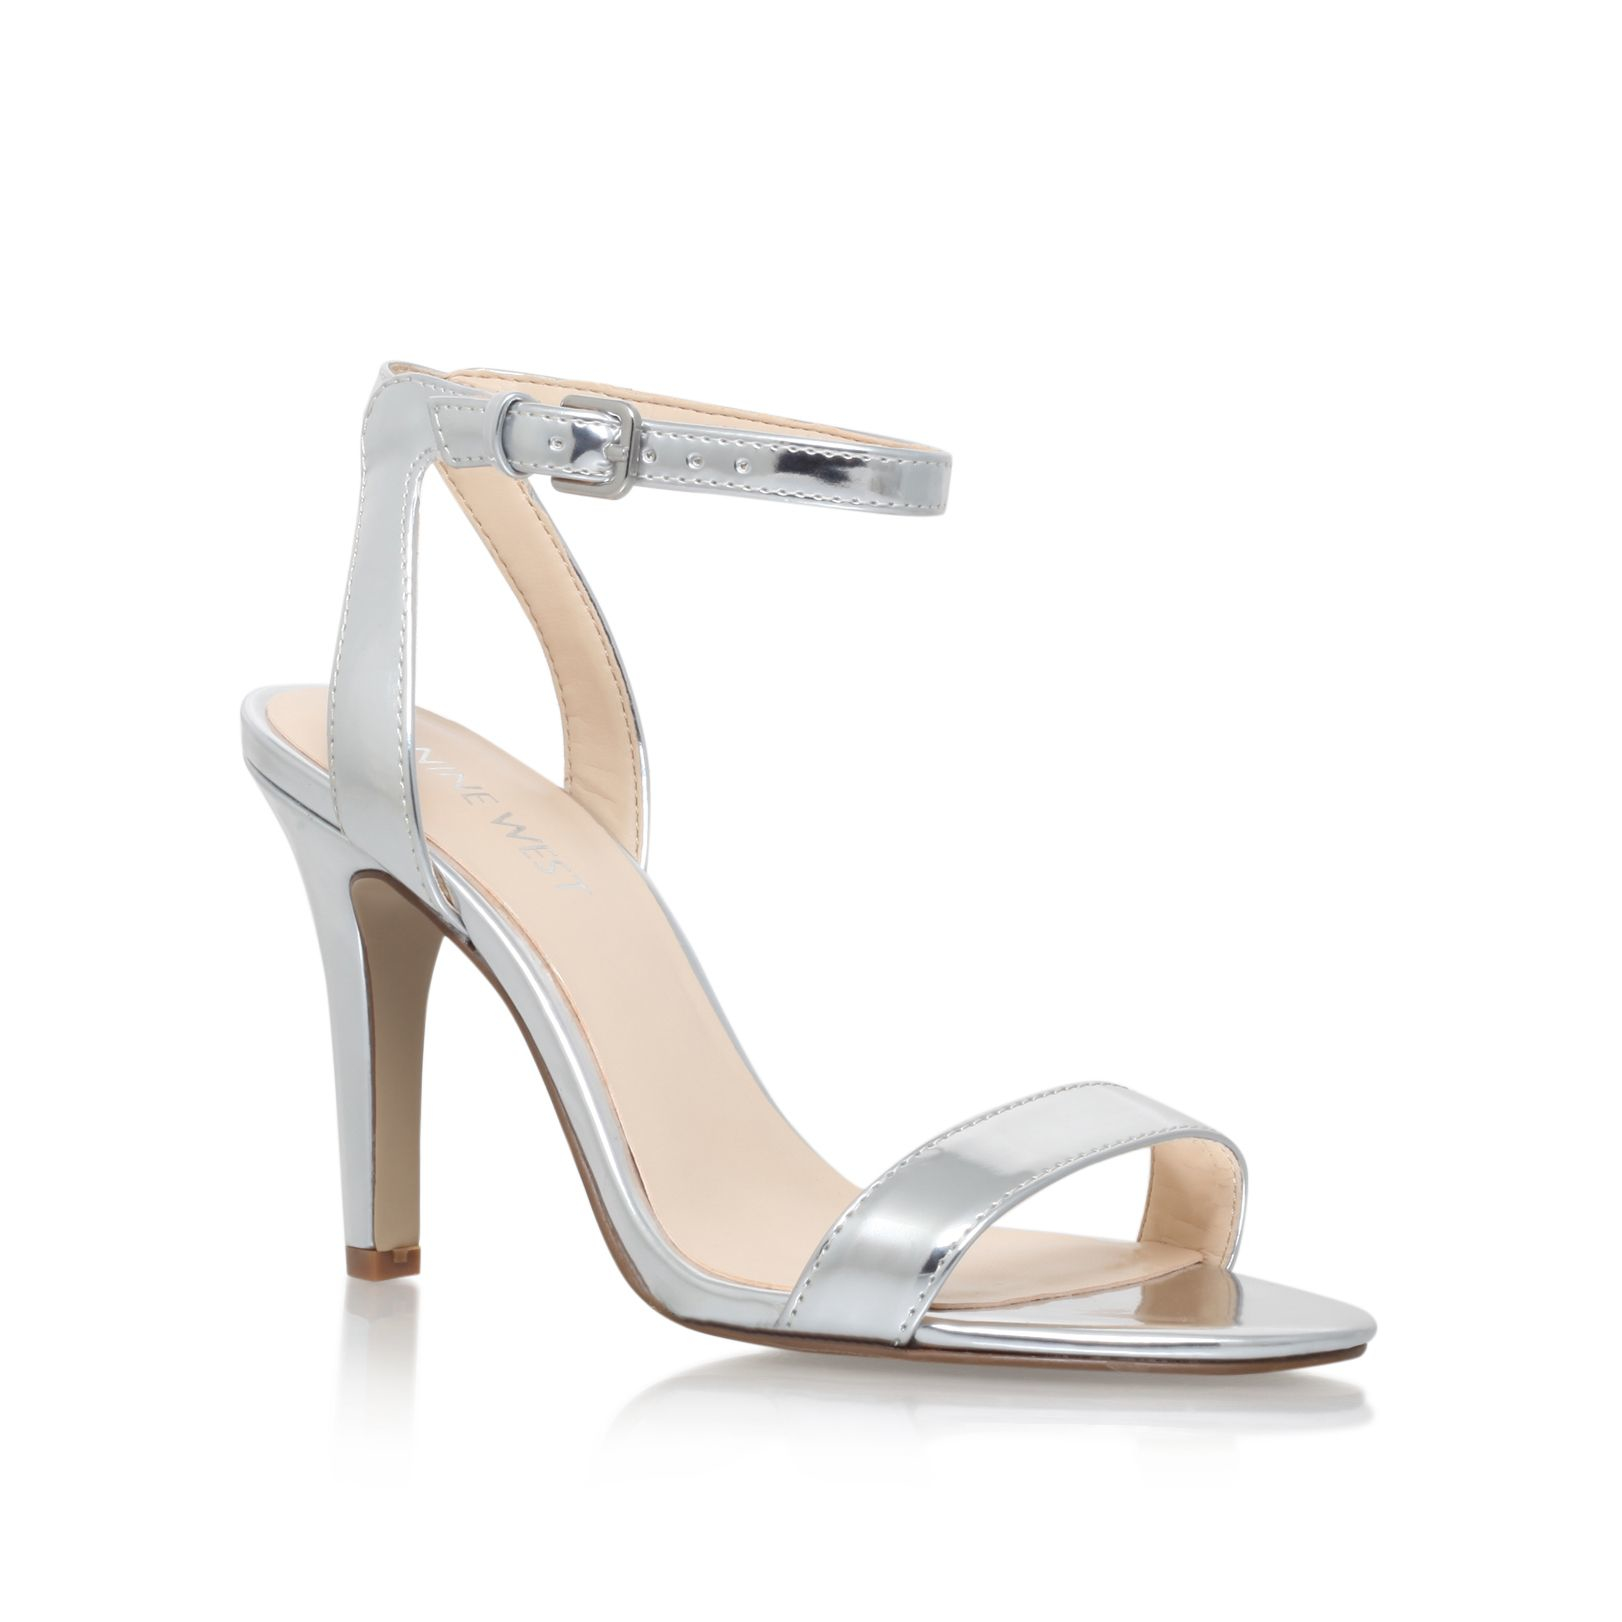 Aniston Metallic Mid Heel Sandal By Nine West ob6ynTls